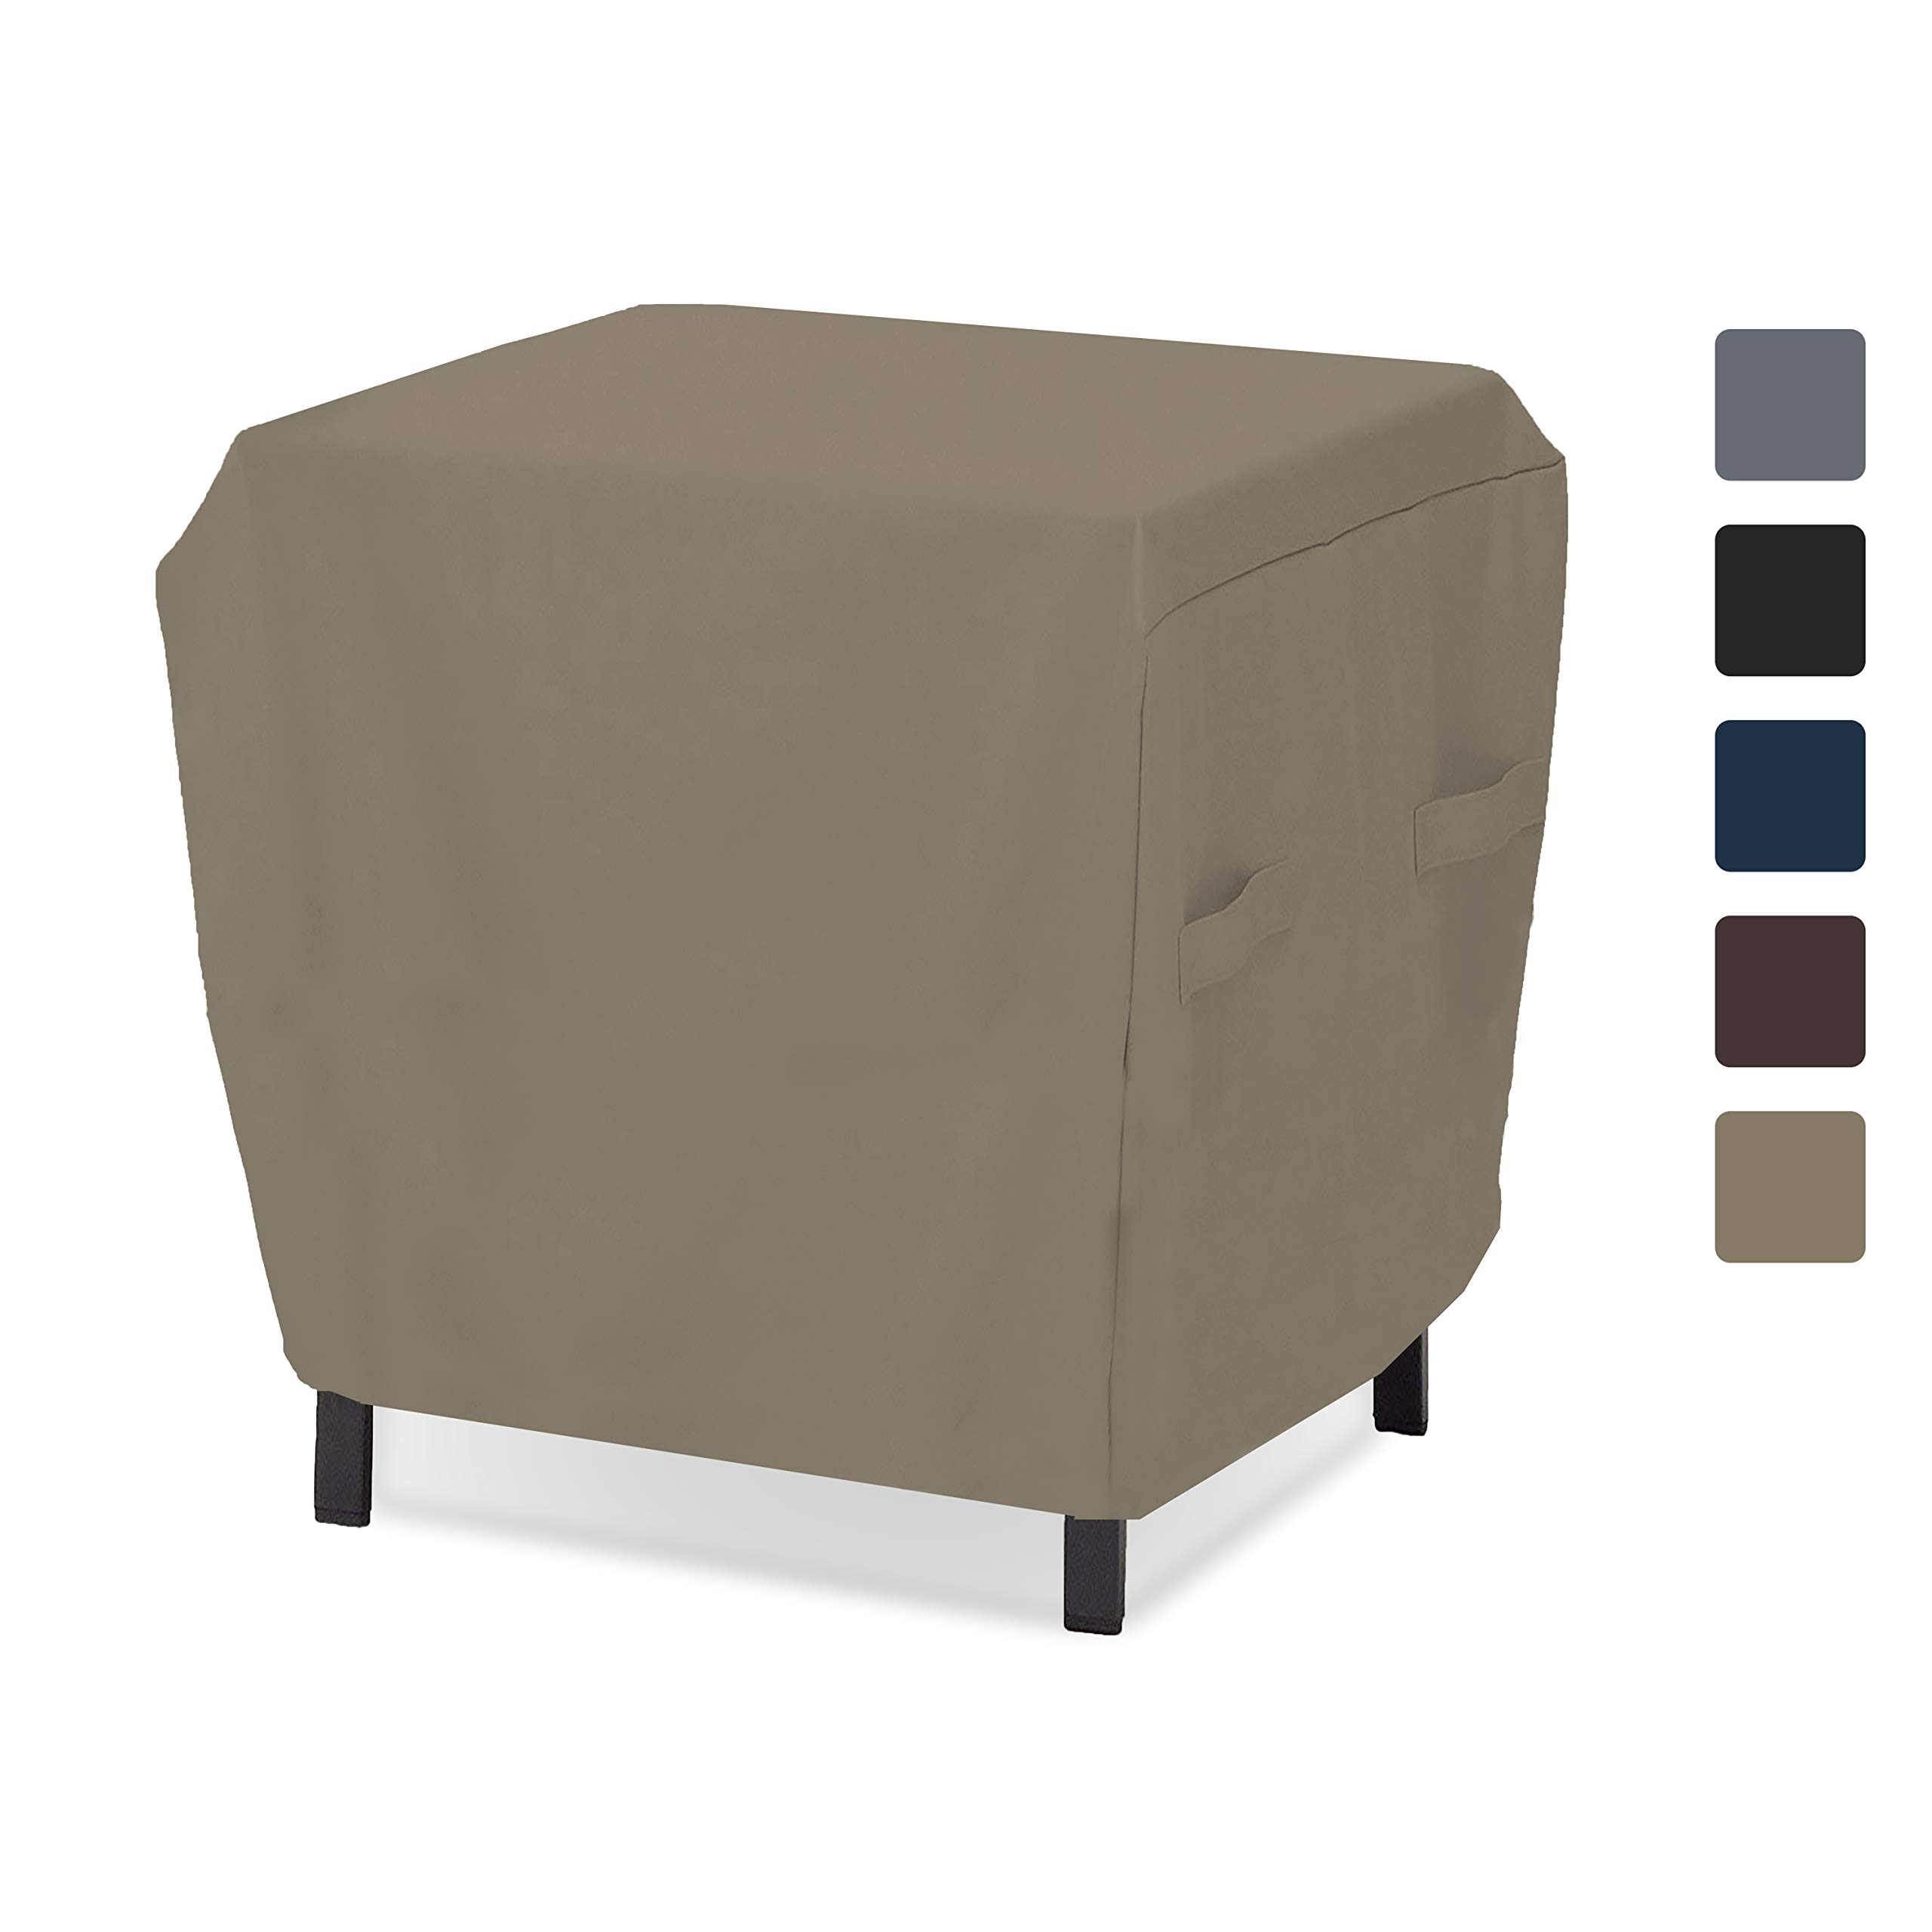 Outdoor Ottoman Cover 12 Oz - Waterproof & Weather Resistant Patio Furniture Covers - Square Ottoman Cover Heavy Duty Fabric with Drawstring for Snug fit (34'' W x 34'' L x 18'' H, Beige)